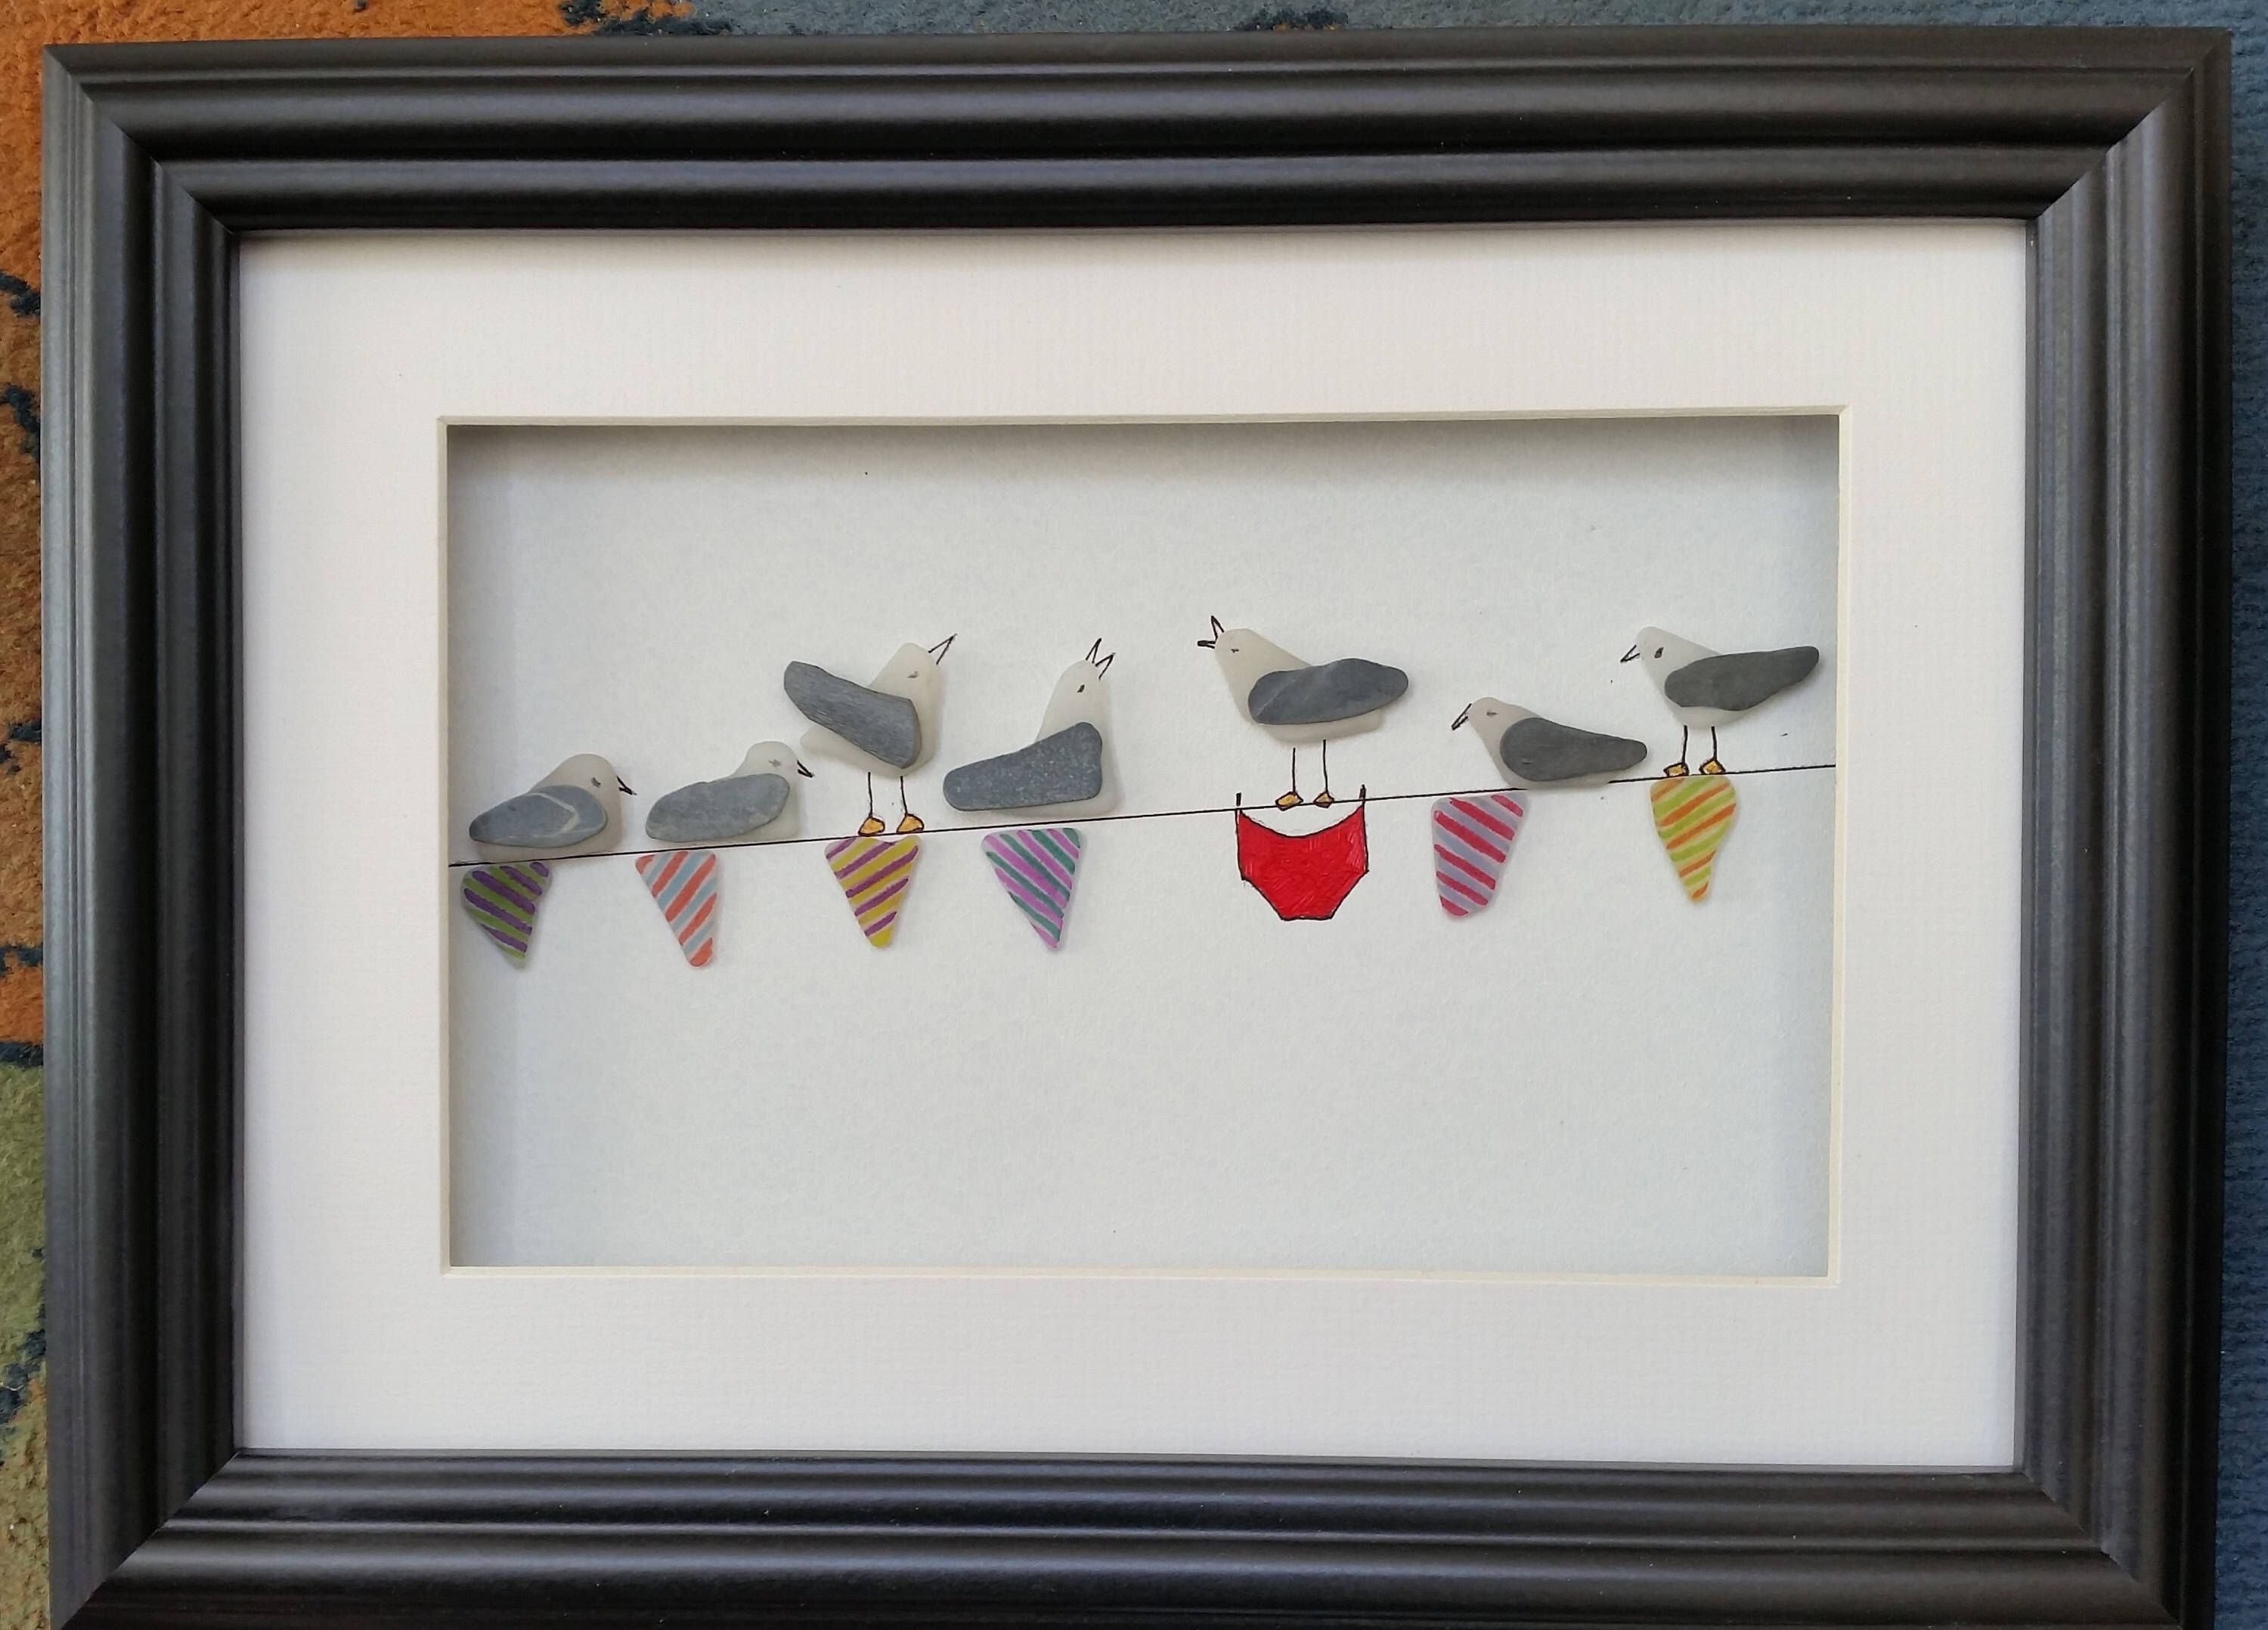 Sea Glass Art, Sea Glass Seagulls, Sea Gulls On Bunting, Pebble With Best And Newest Sea Glass Wall Art (View 9 of 15)